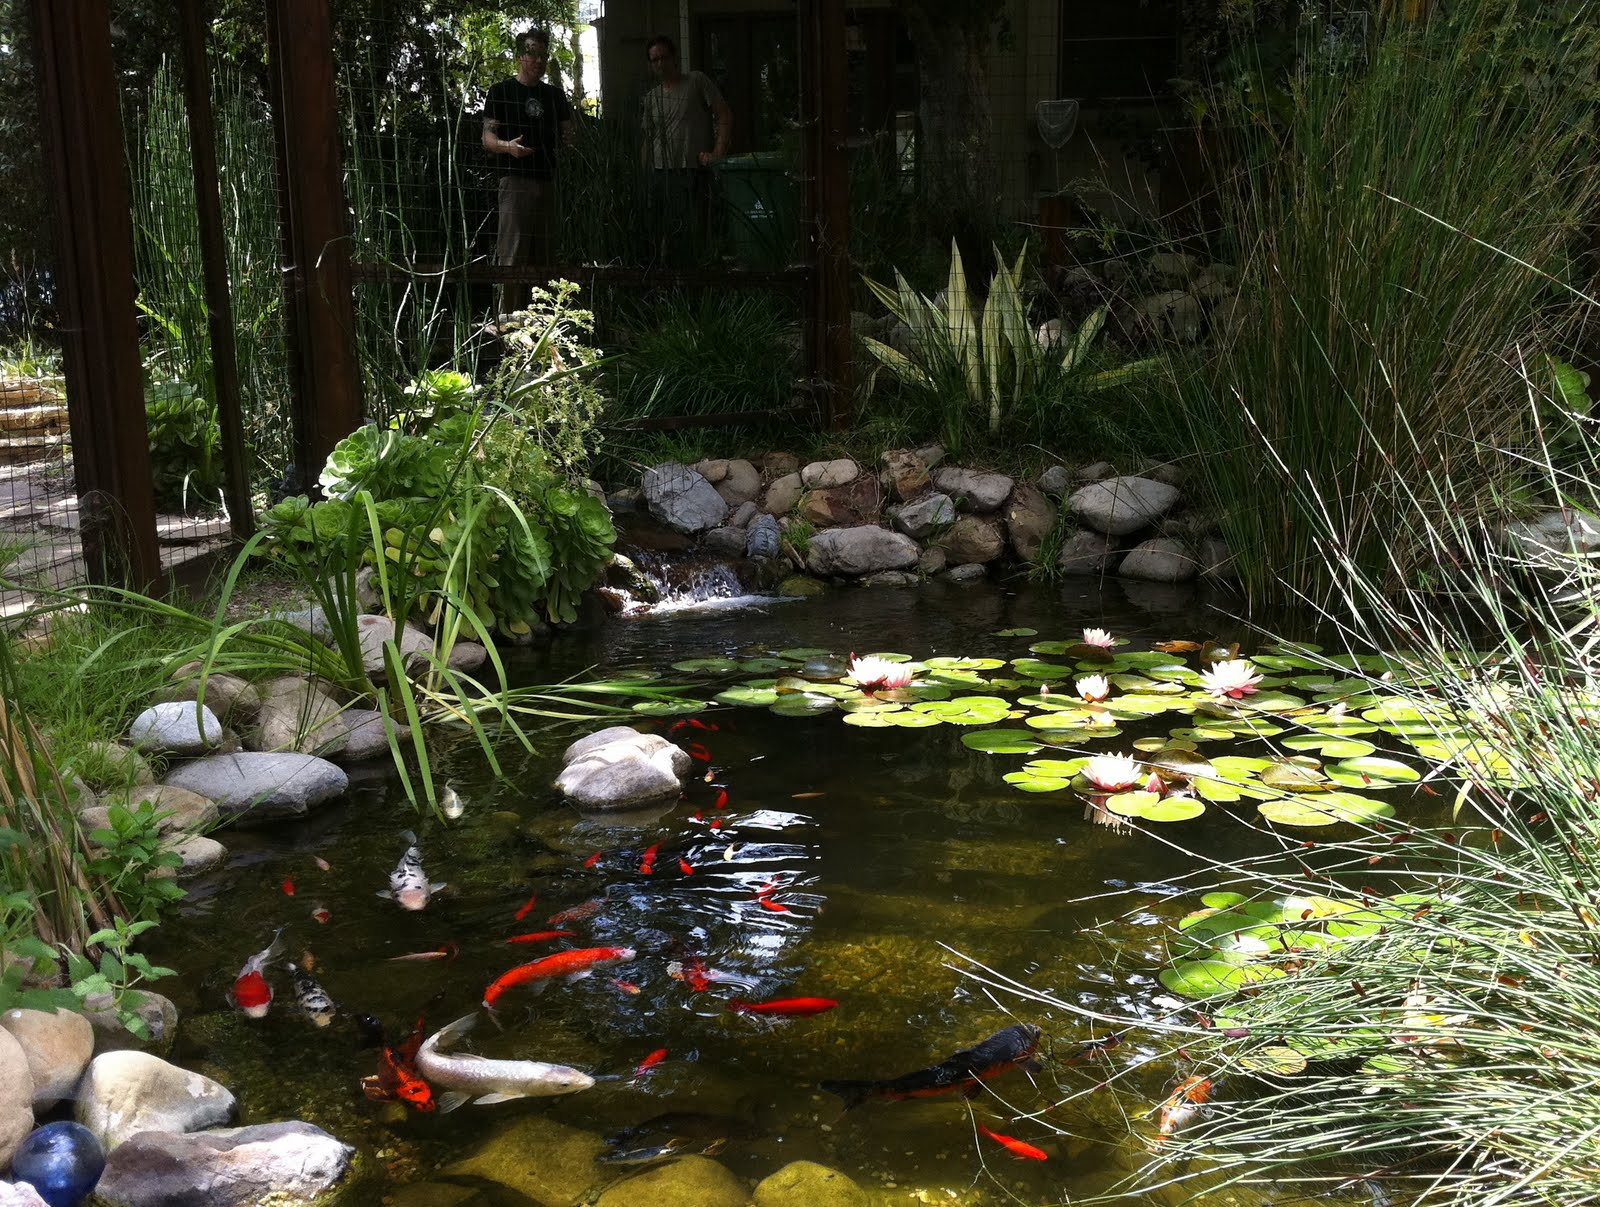 Elgin eco house garden serenity in the midst of the city for Koi ponds and gardens